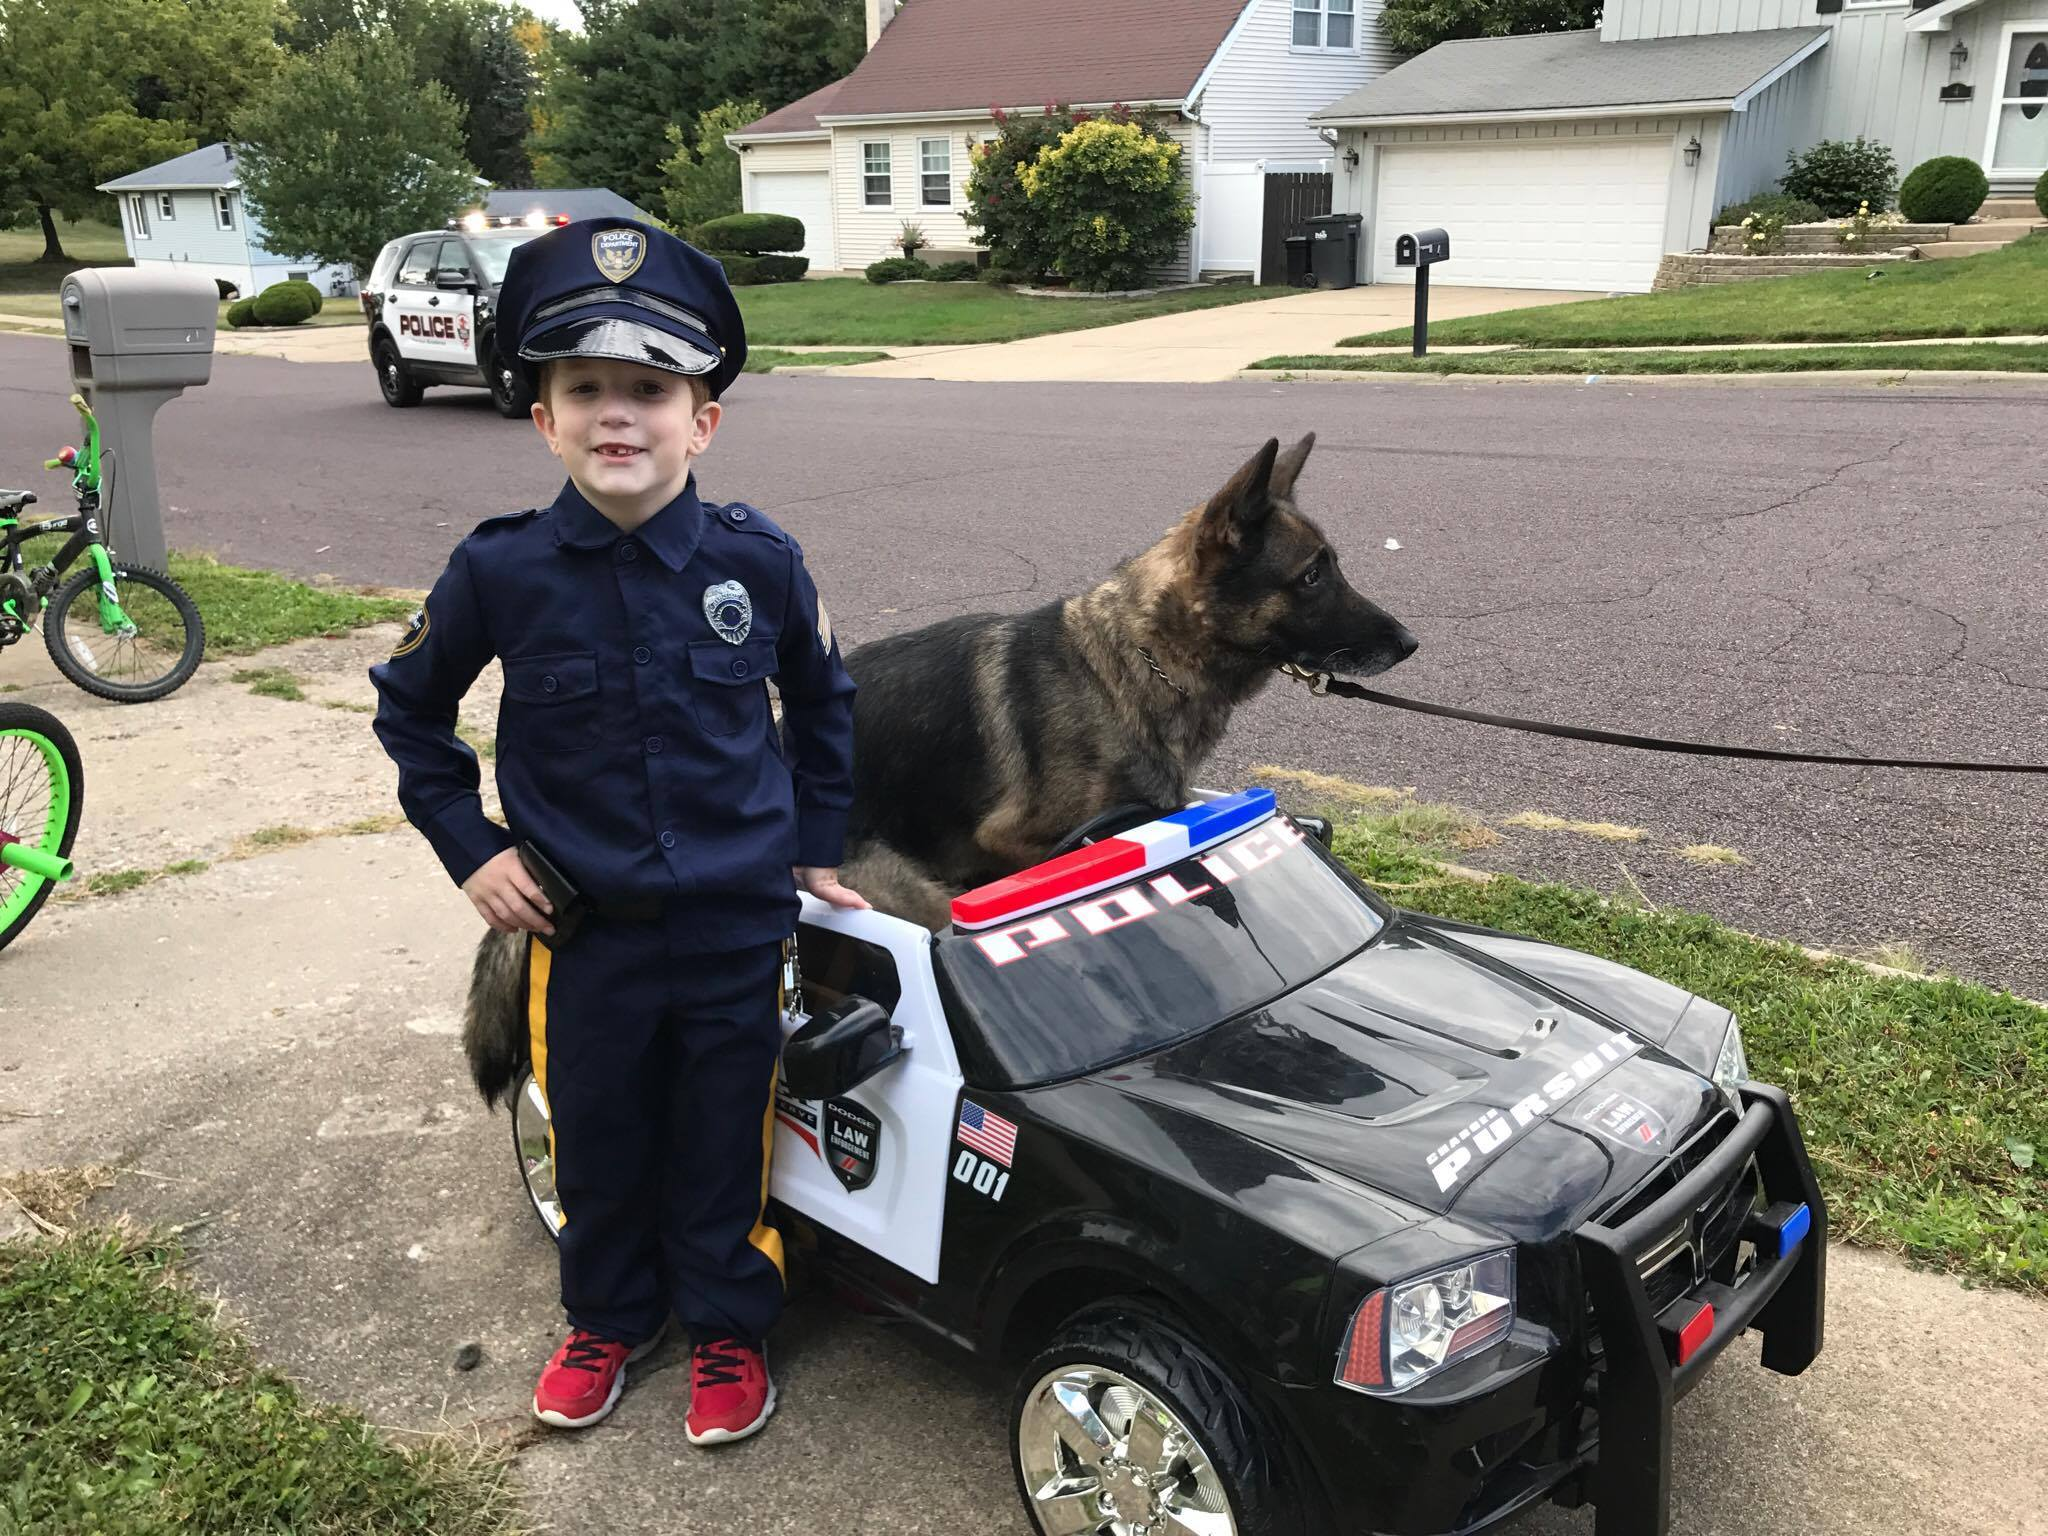 Child in police costume posing next to K9 from Pekin PD in toy police car.